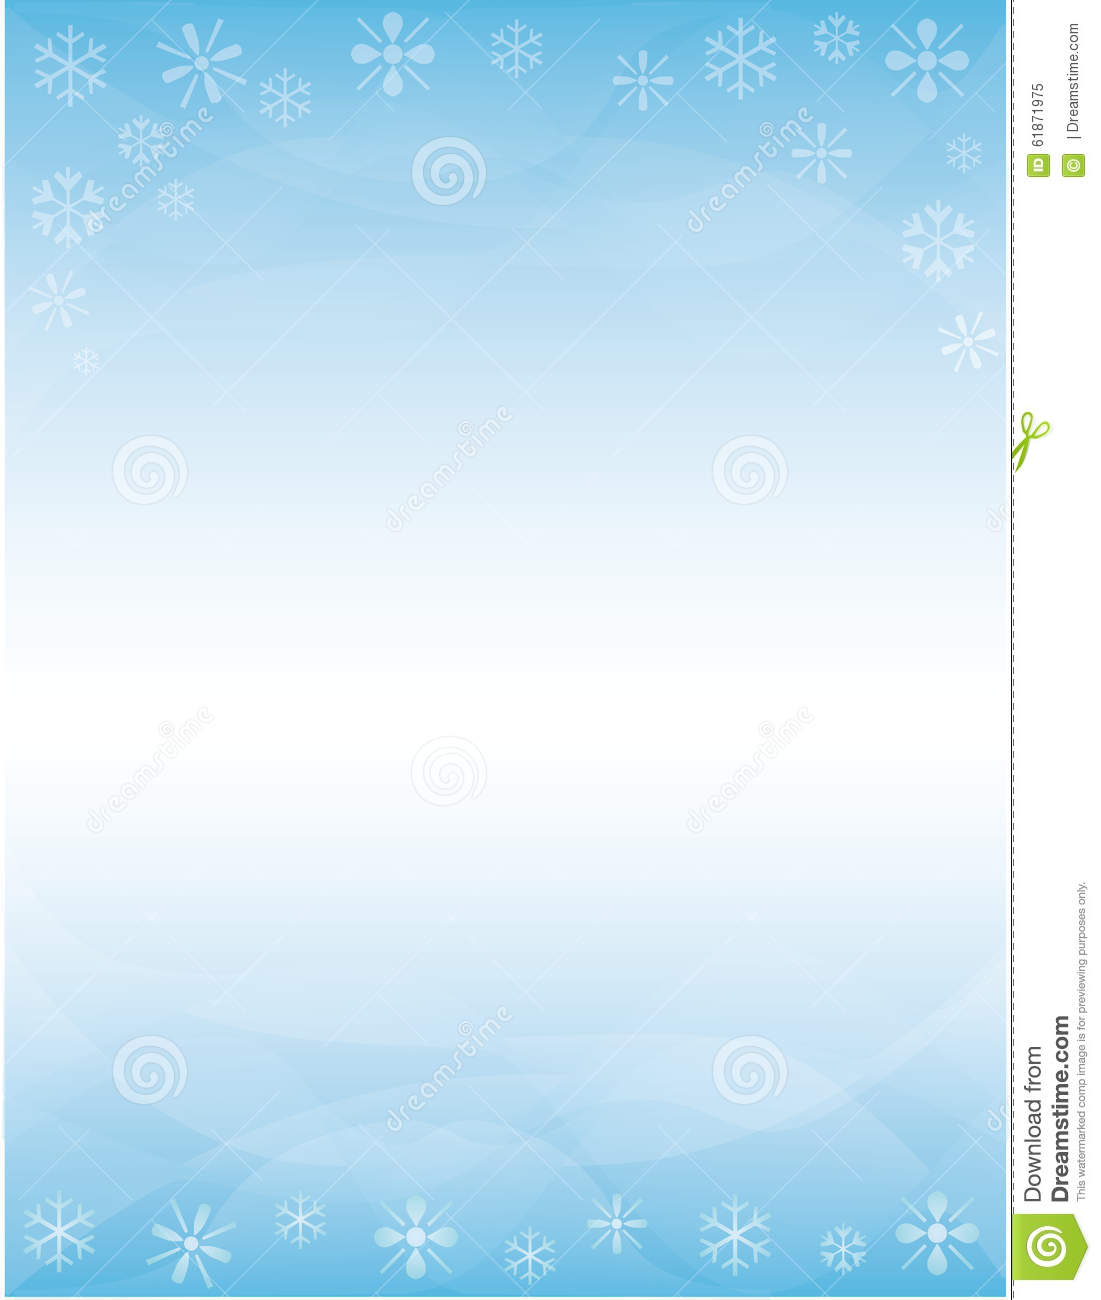 winter brochure background stock illustration image 61871975 winter brochure background